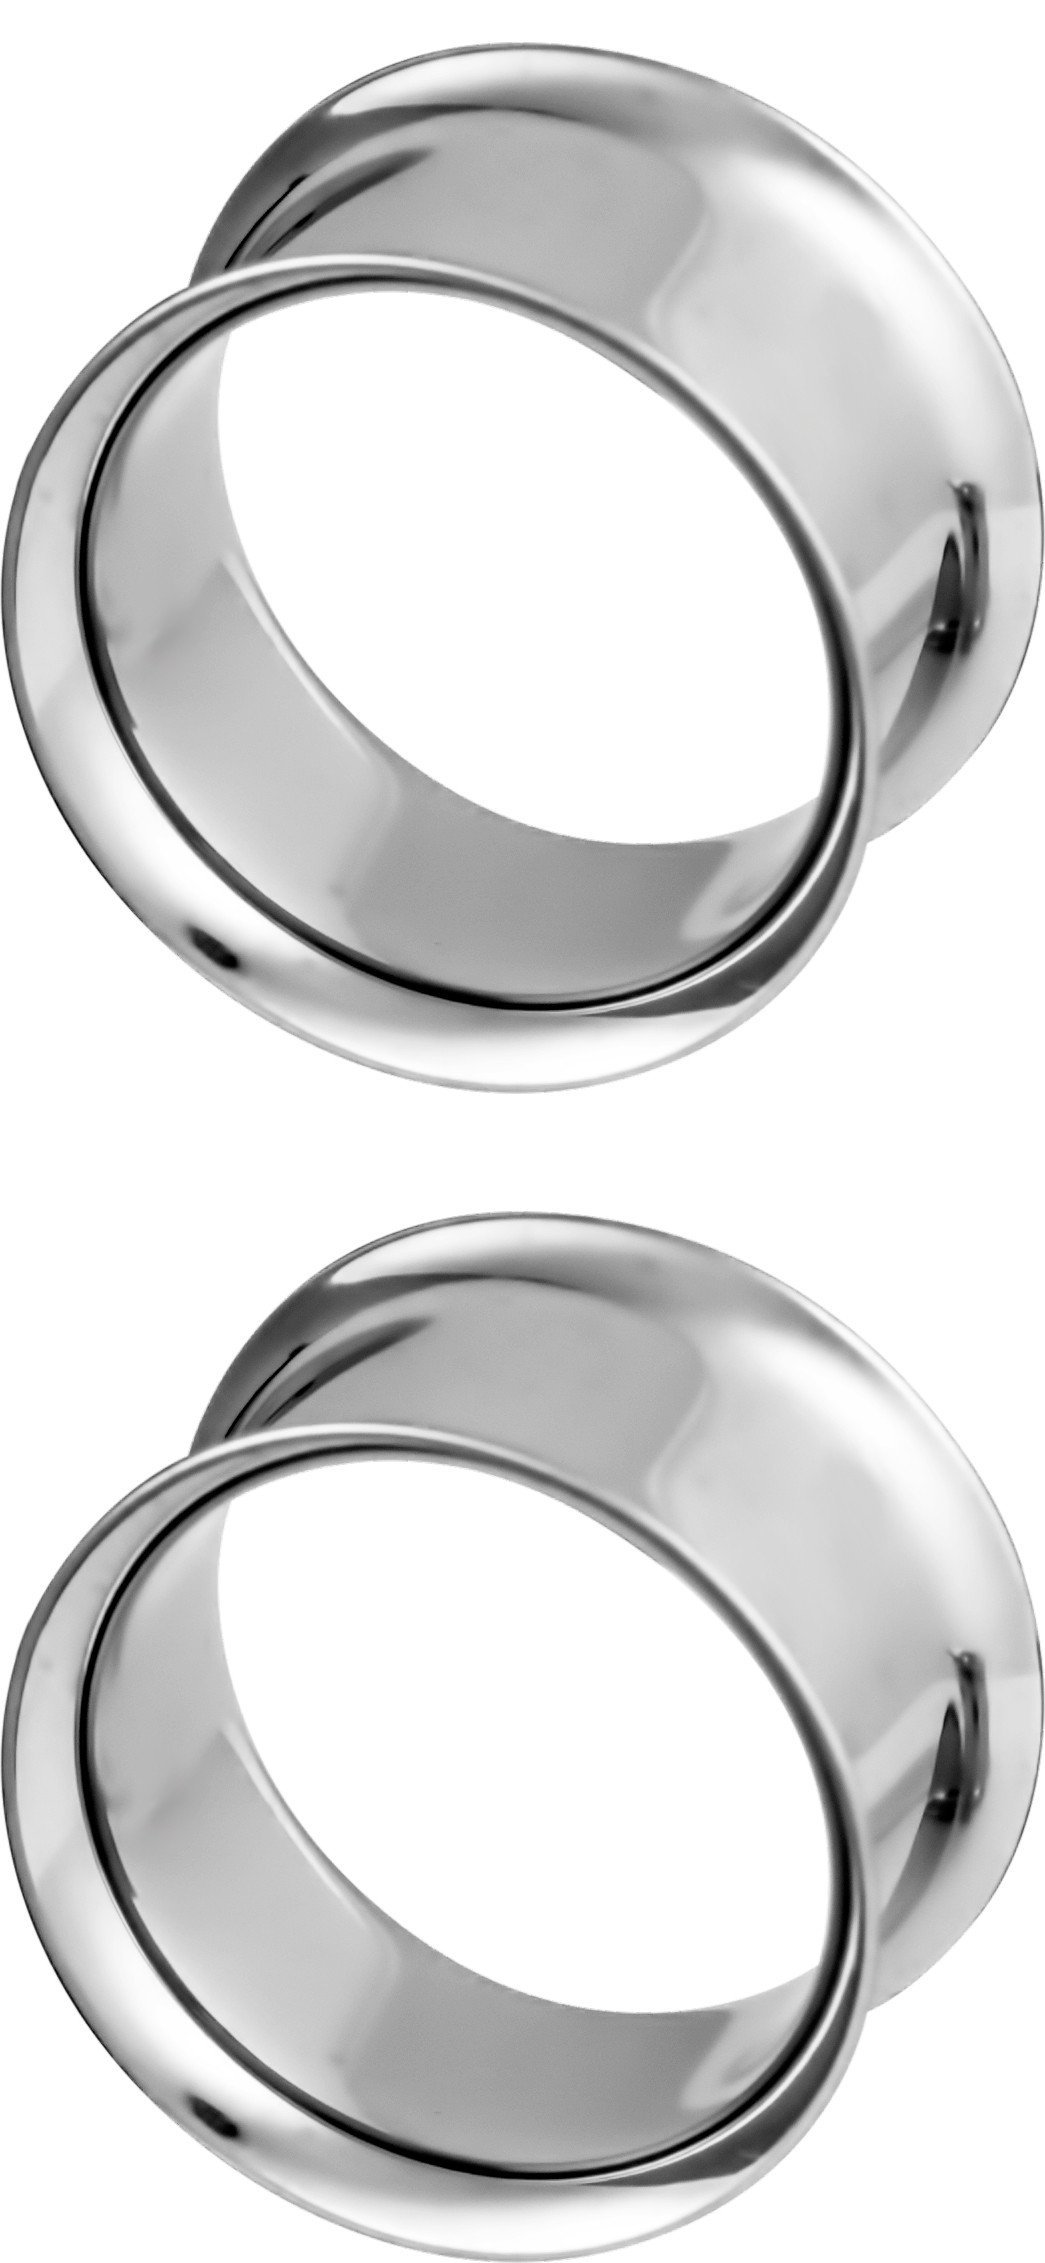 Set of 11/16 Inch Surgical Steel Ear Gauges, 18mm Double Flared Saddle Tunnel Plug Earrings